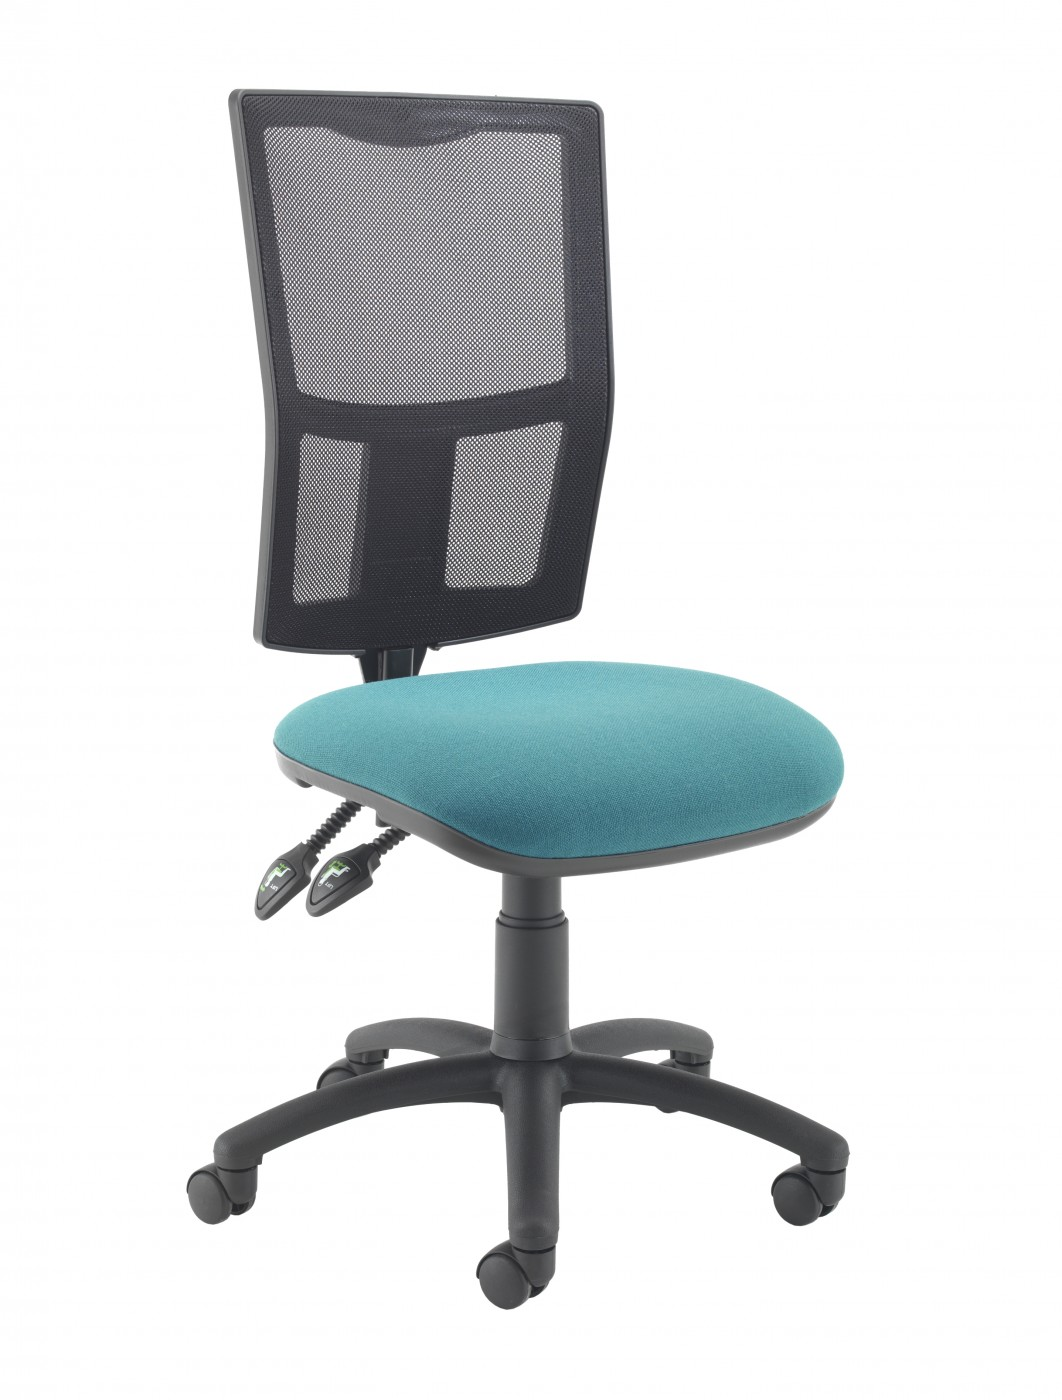 TC Calypso II Mesh Office Chair CH2803   Enlarged View